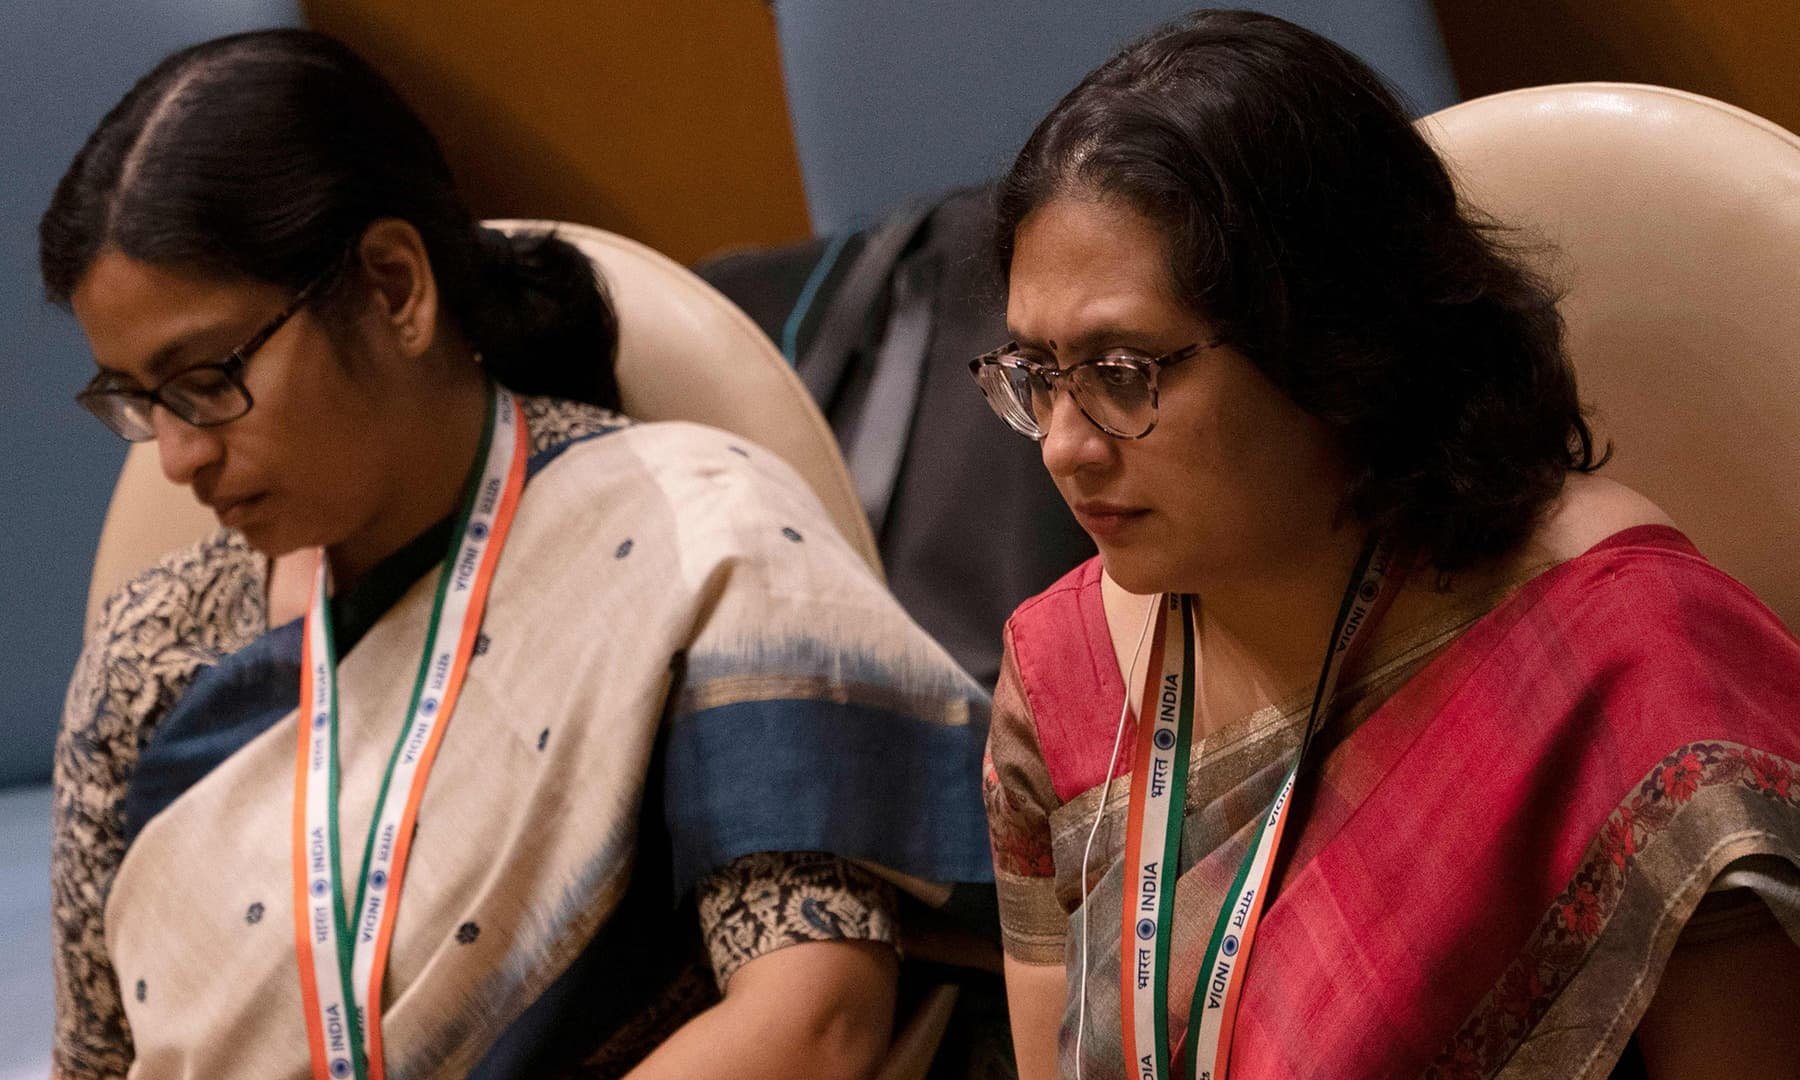 Delegates from India listen as PM Imran Khan speaks at the 74th session of the United Nations General Assembly on Friday in New York. — AFP